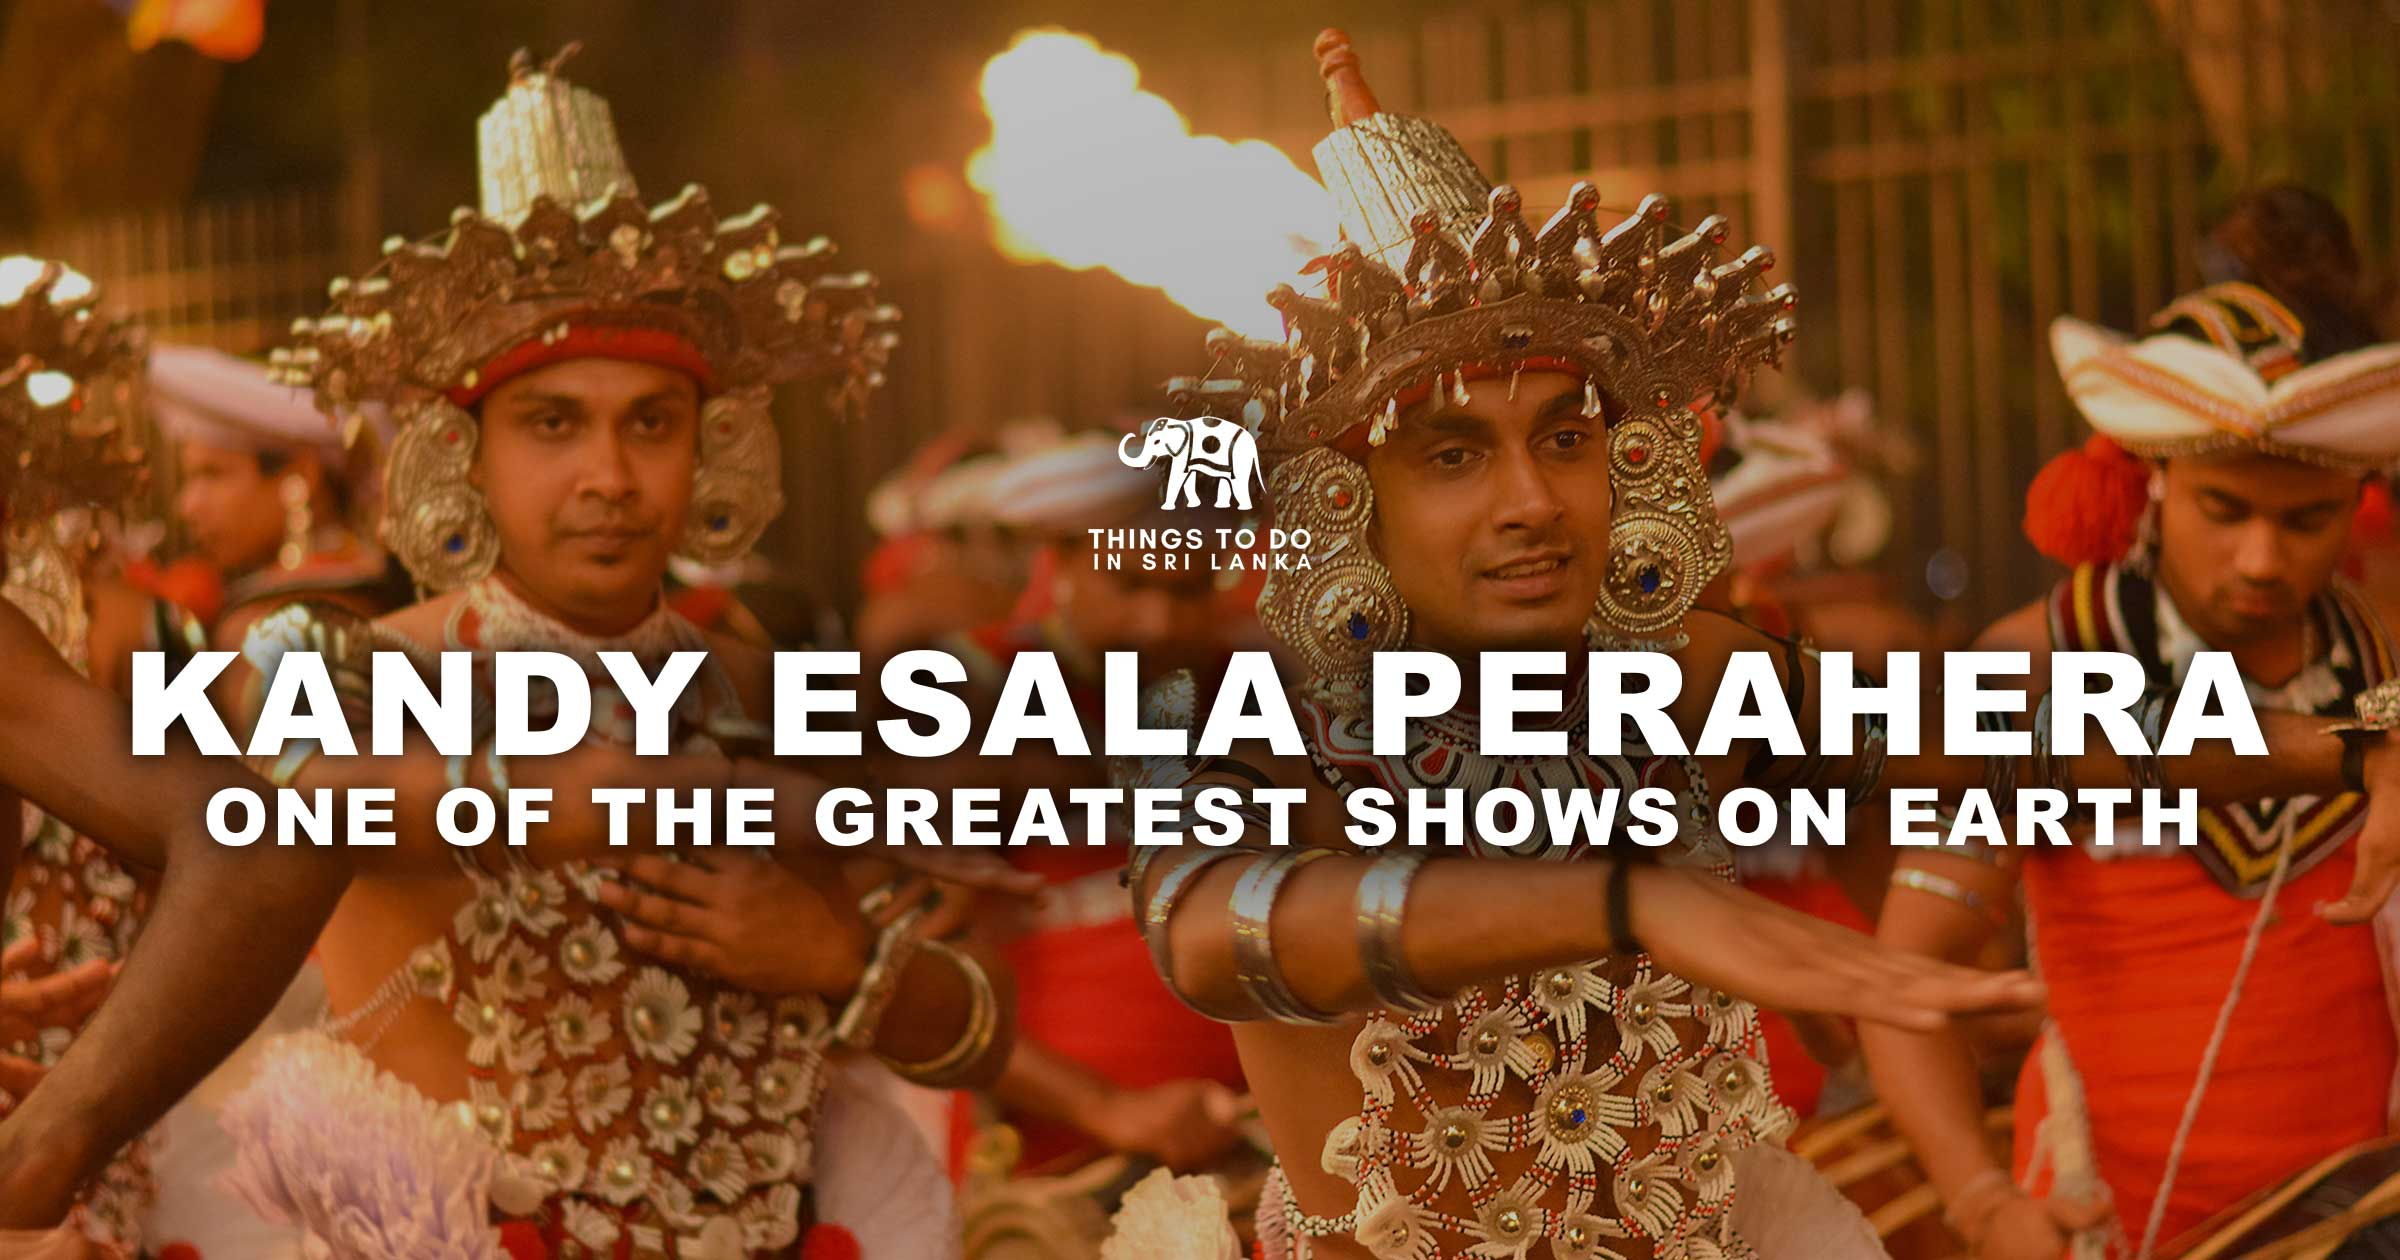 Kandy Esala Perahera is one of the greatest shows on earth